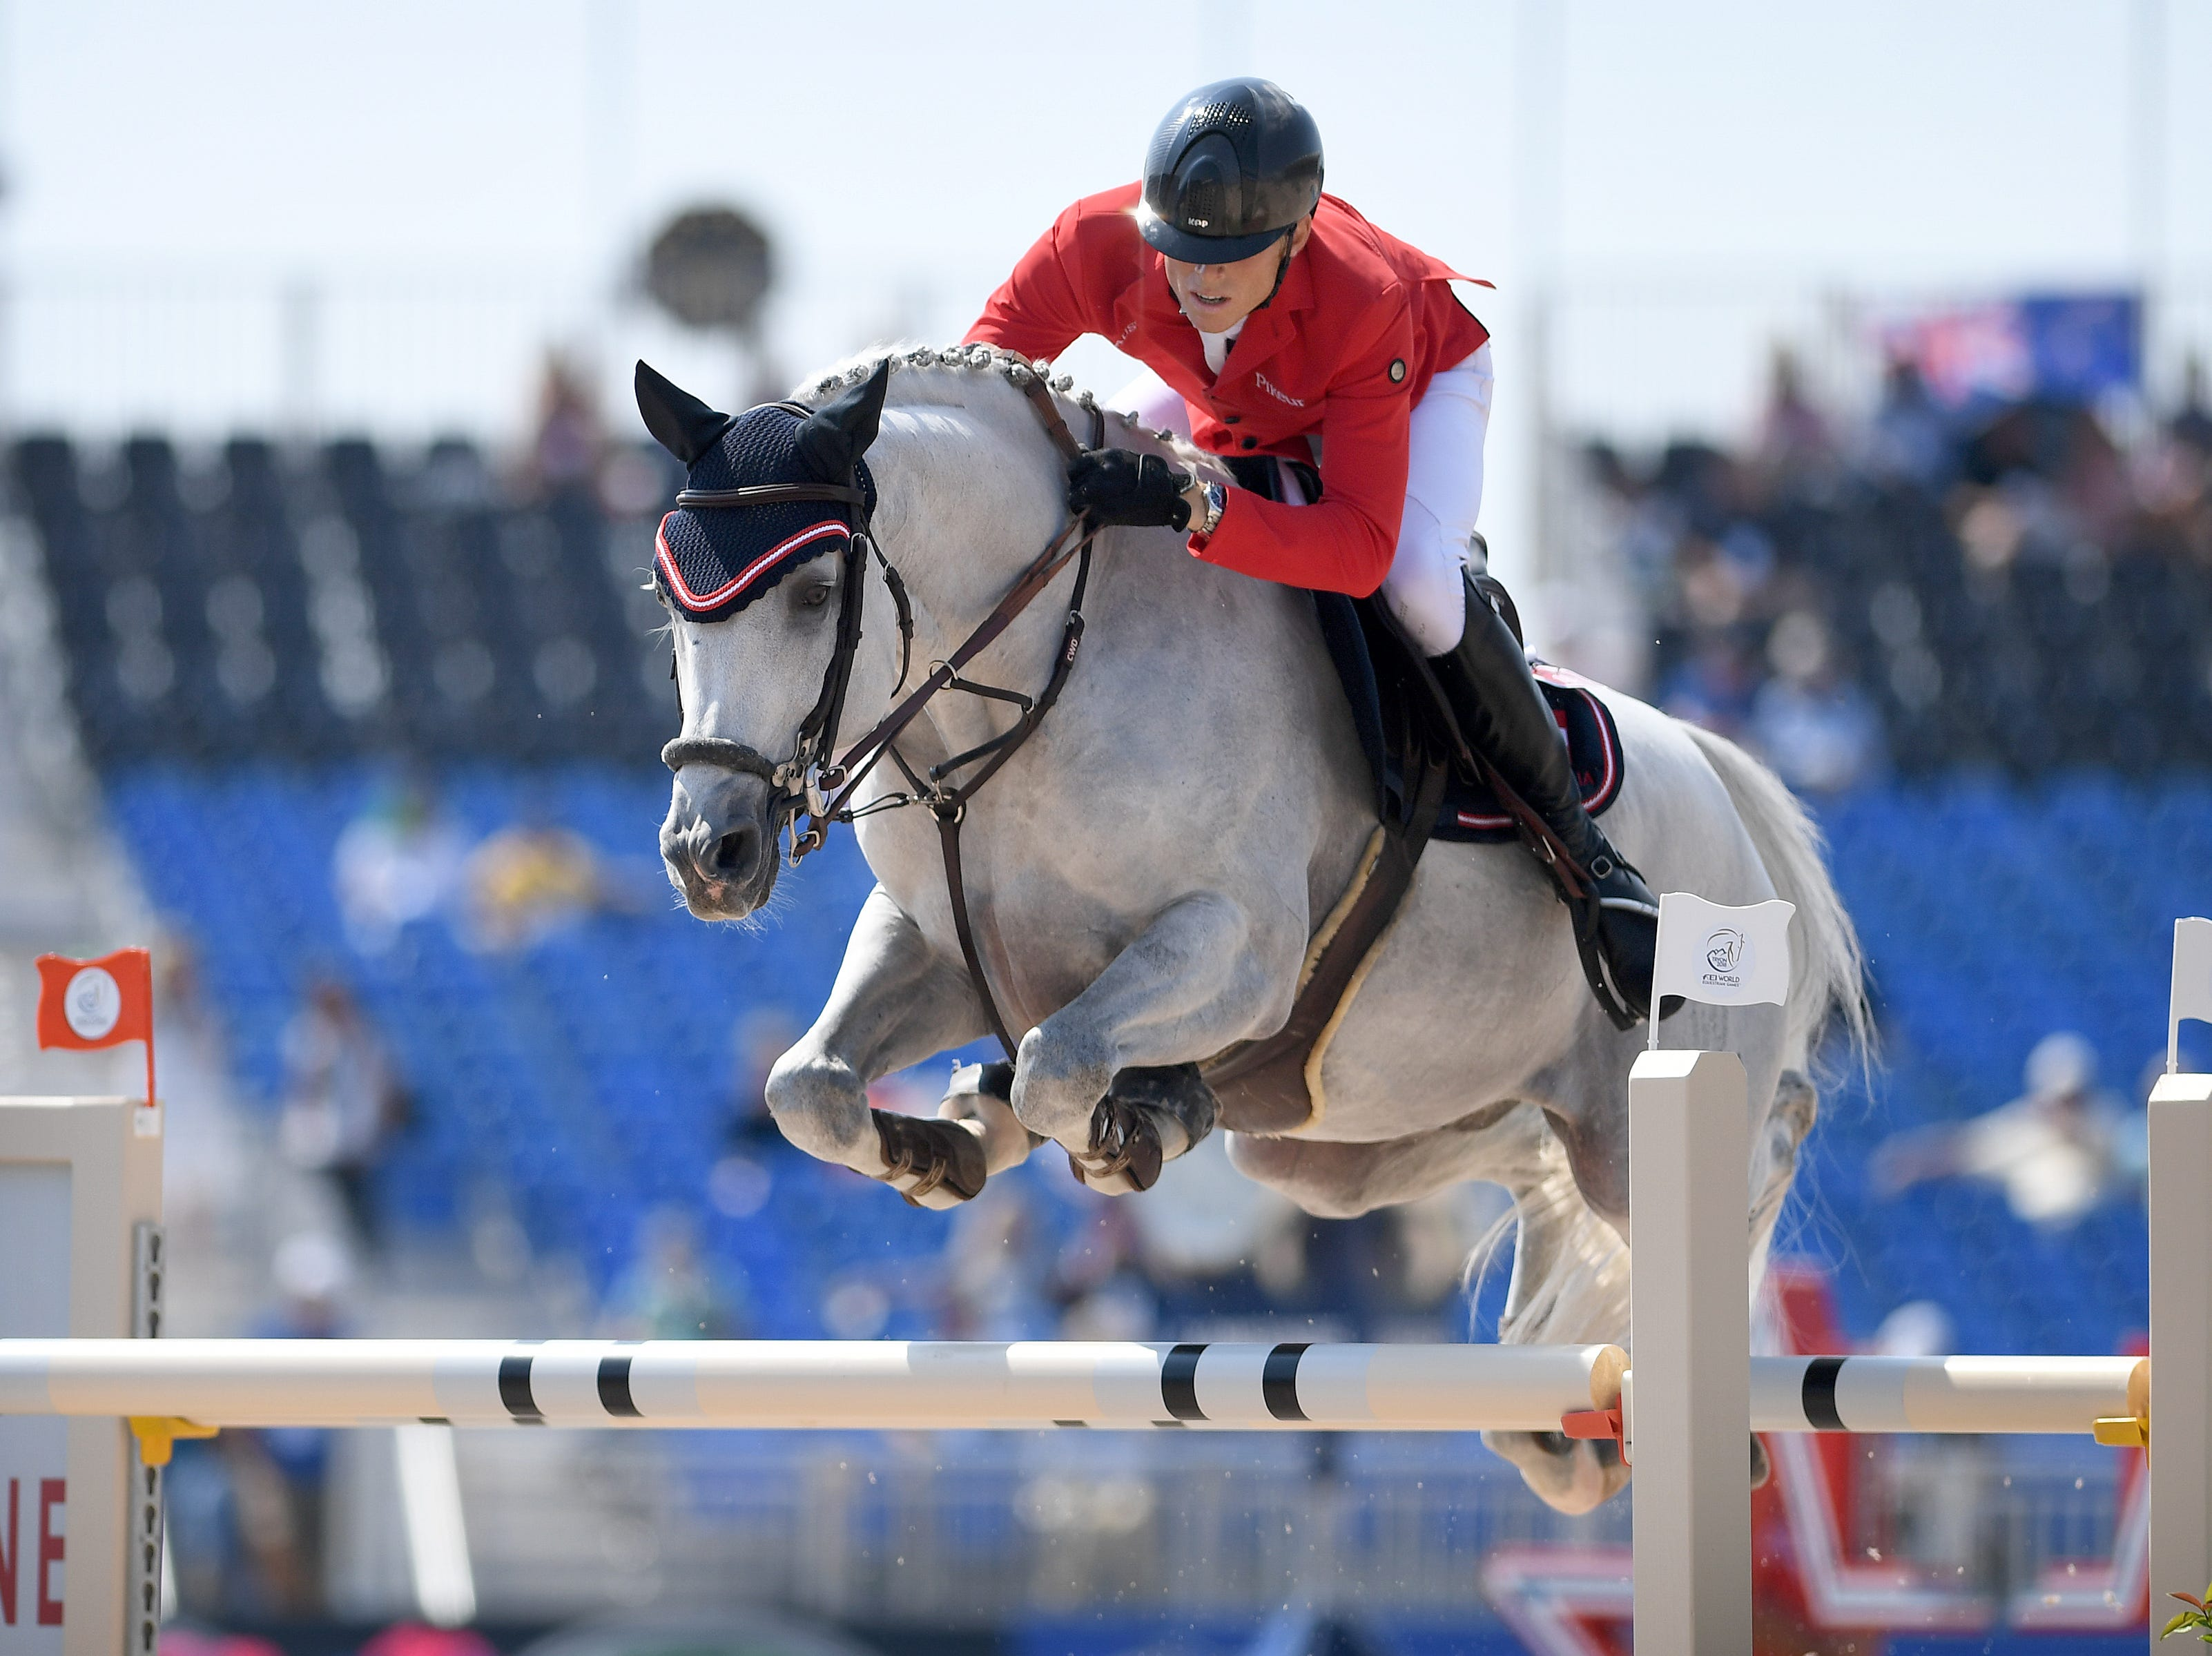 Austria's Max Kuhner, on Chardonnay, competes in the team jumping competition of the FEI World Equestrian Games at the Tryon International Equestrian Center on Sept. 20, 2018.